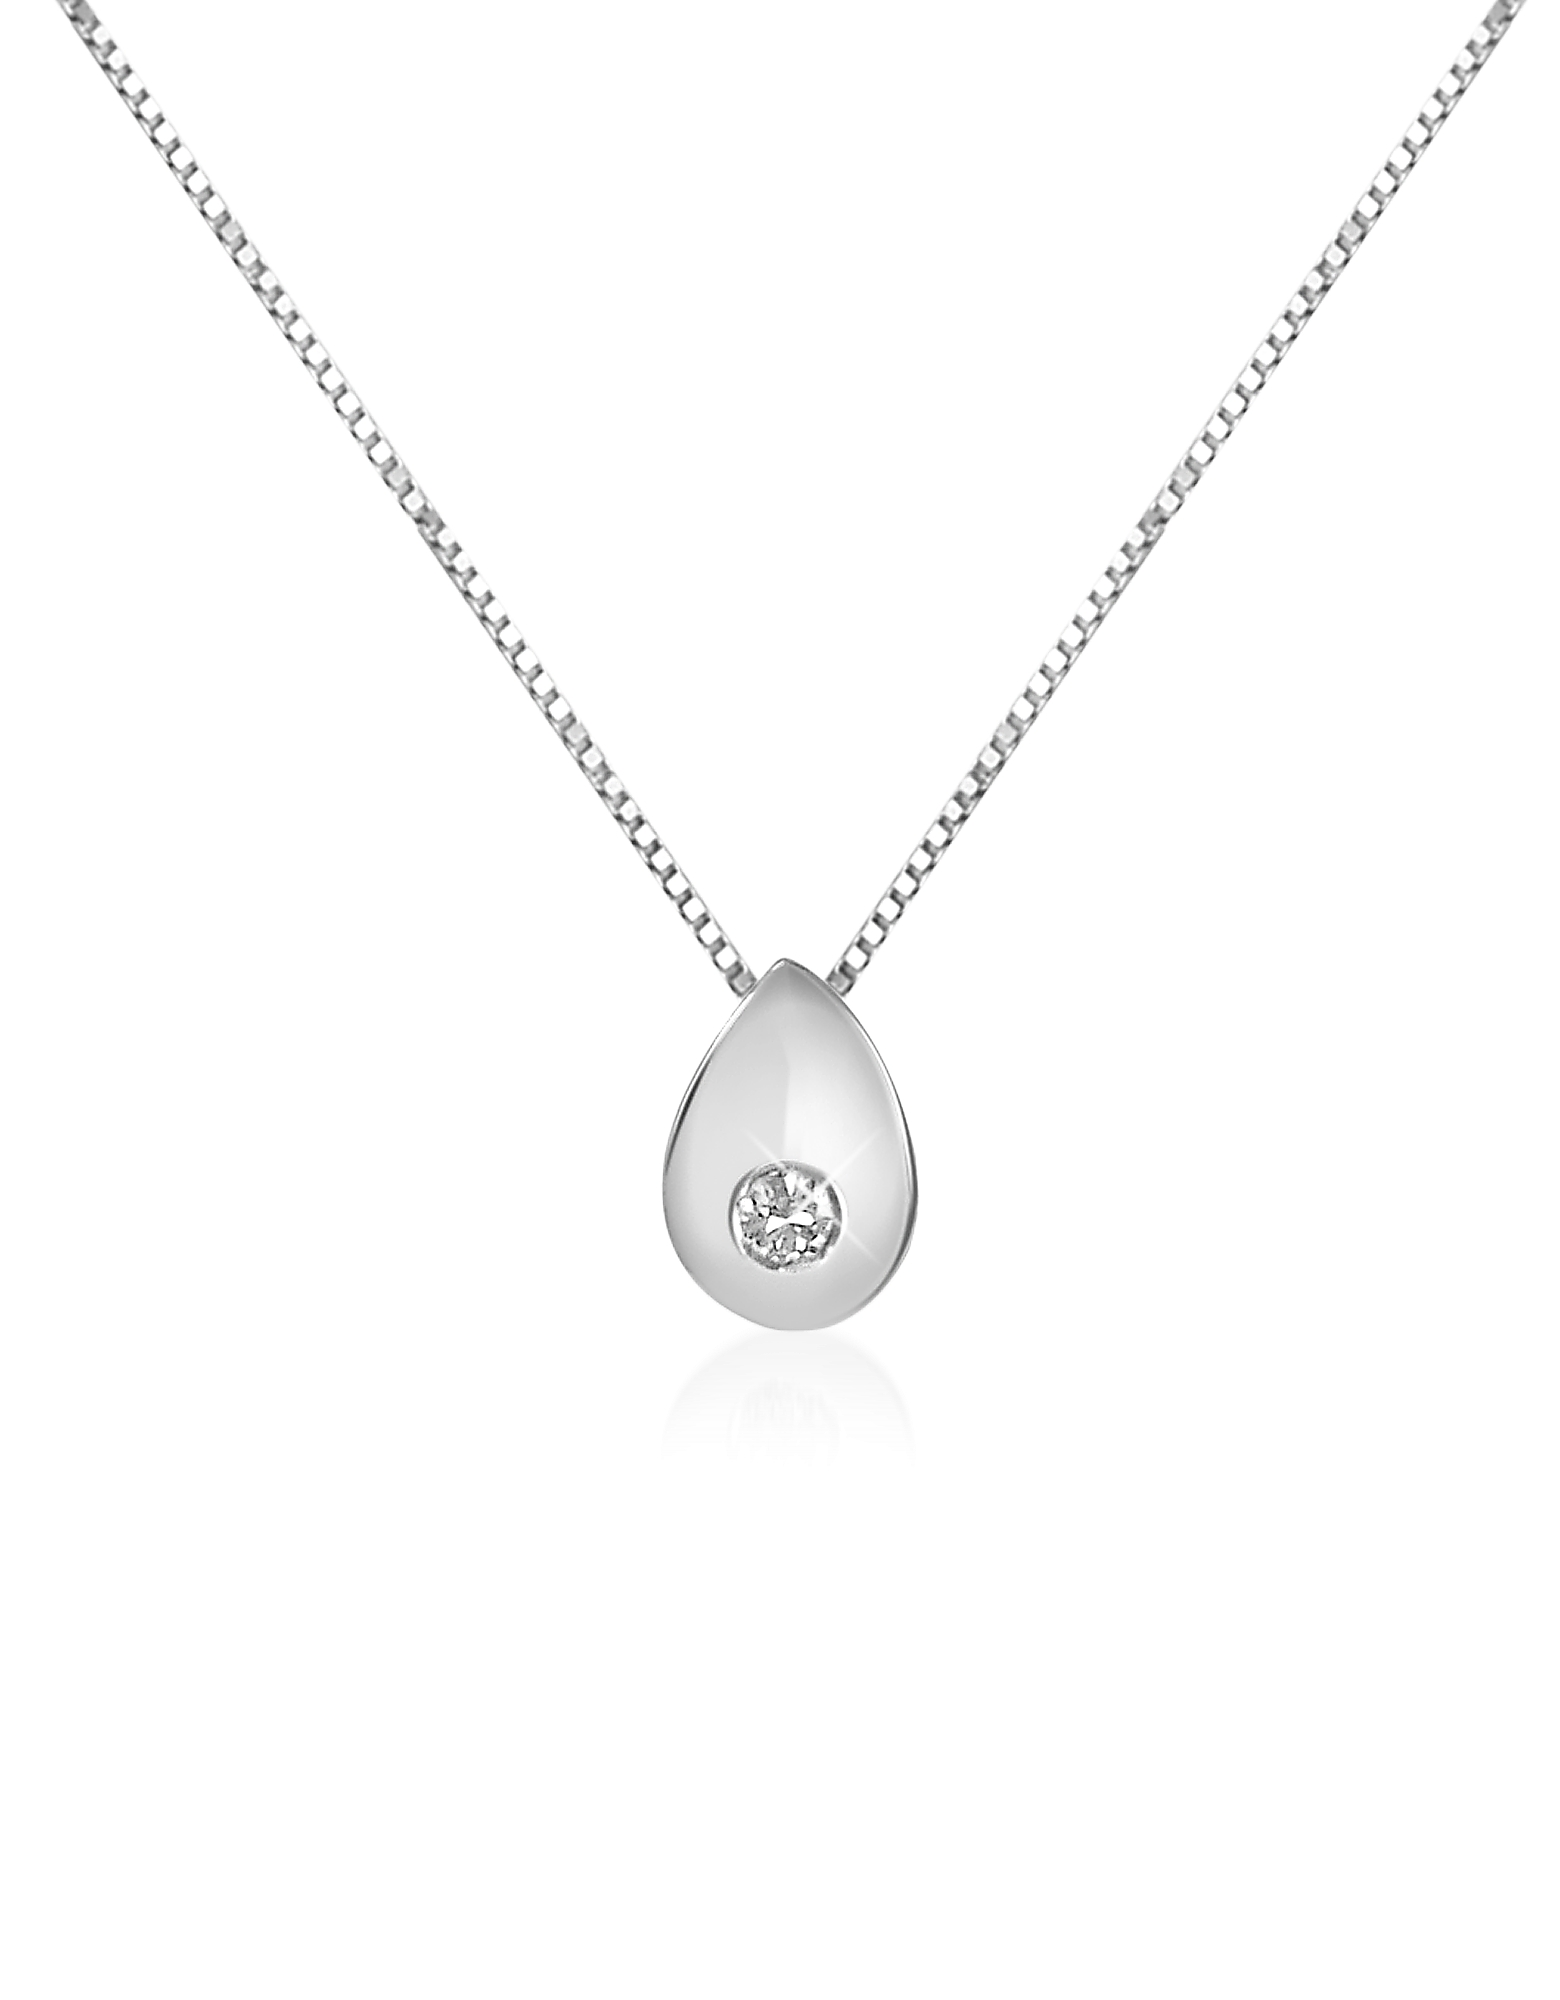 Forzieri Necklaces, 0.02 ct Diamond Drop 18K Gold Necklace